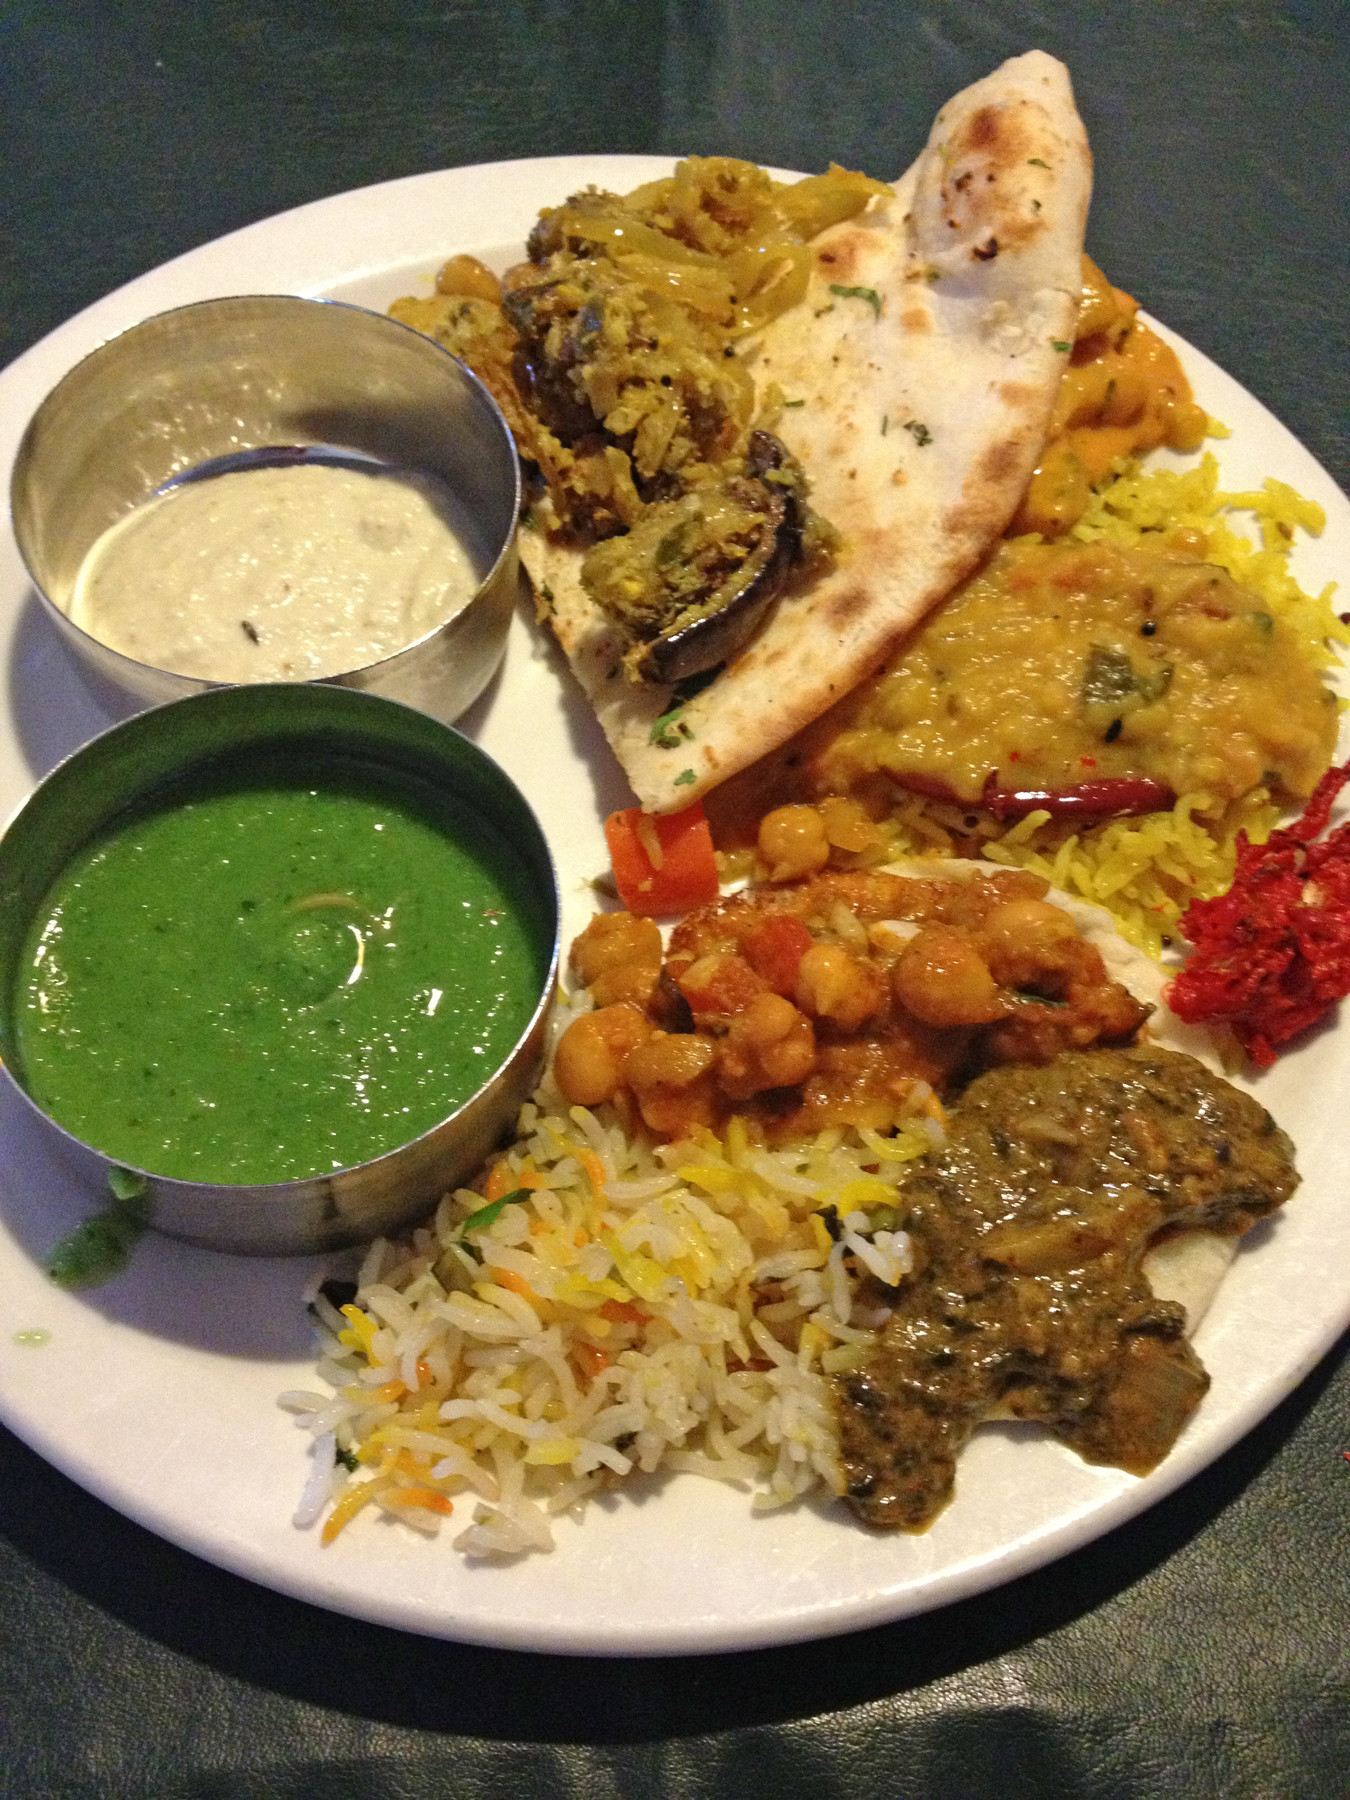 You can experiment with a small helping of everything from the bountiful Indian buffet lunch at 5th Element — items range from vegetarian dishes to lamb and goat, with flavors from mild to extremely spicy.